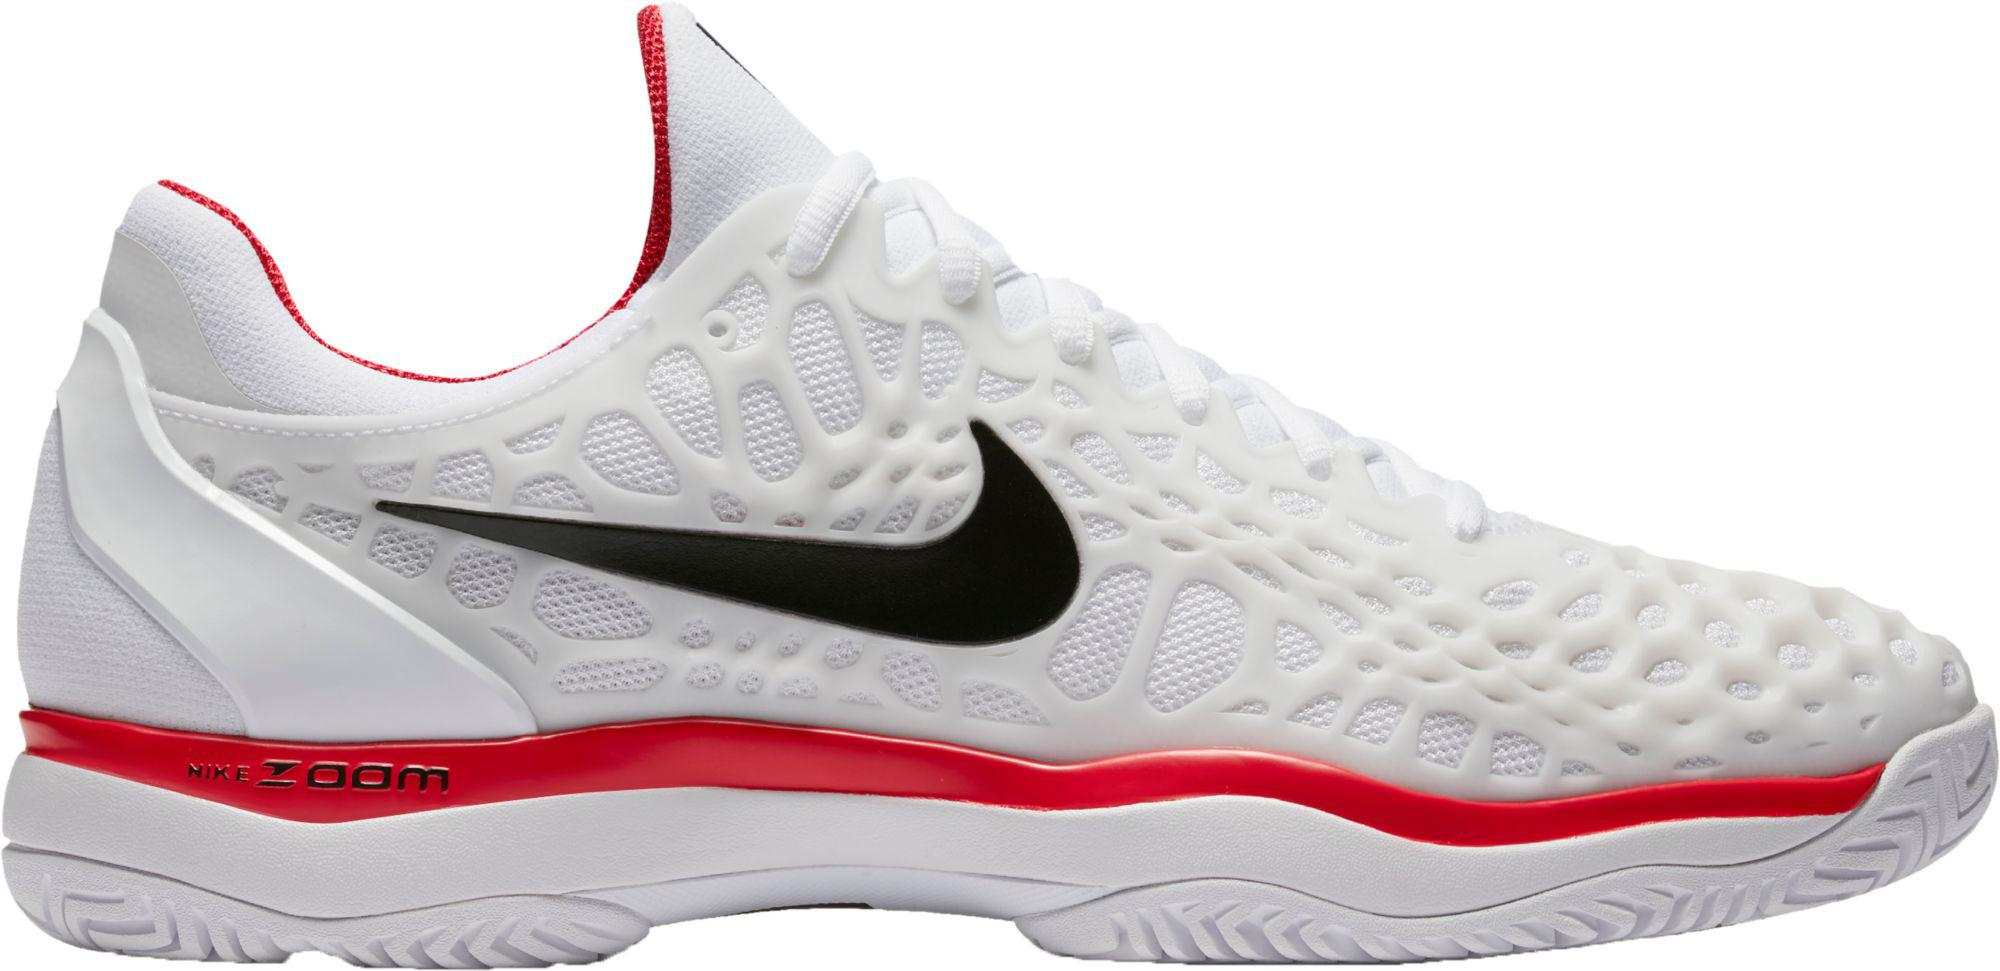 1dcc41d5721c Lyst - Nike Zoom Cage 3 Tennis Shoes in White for Men